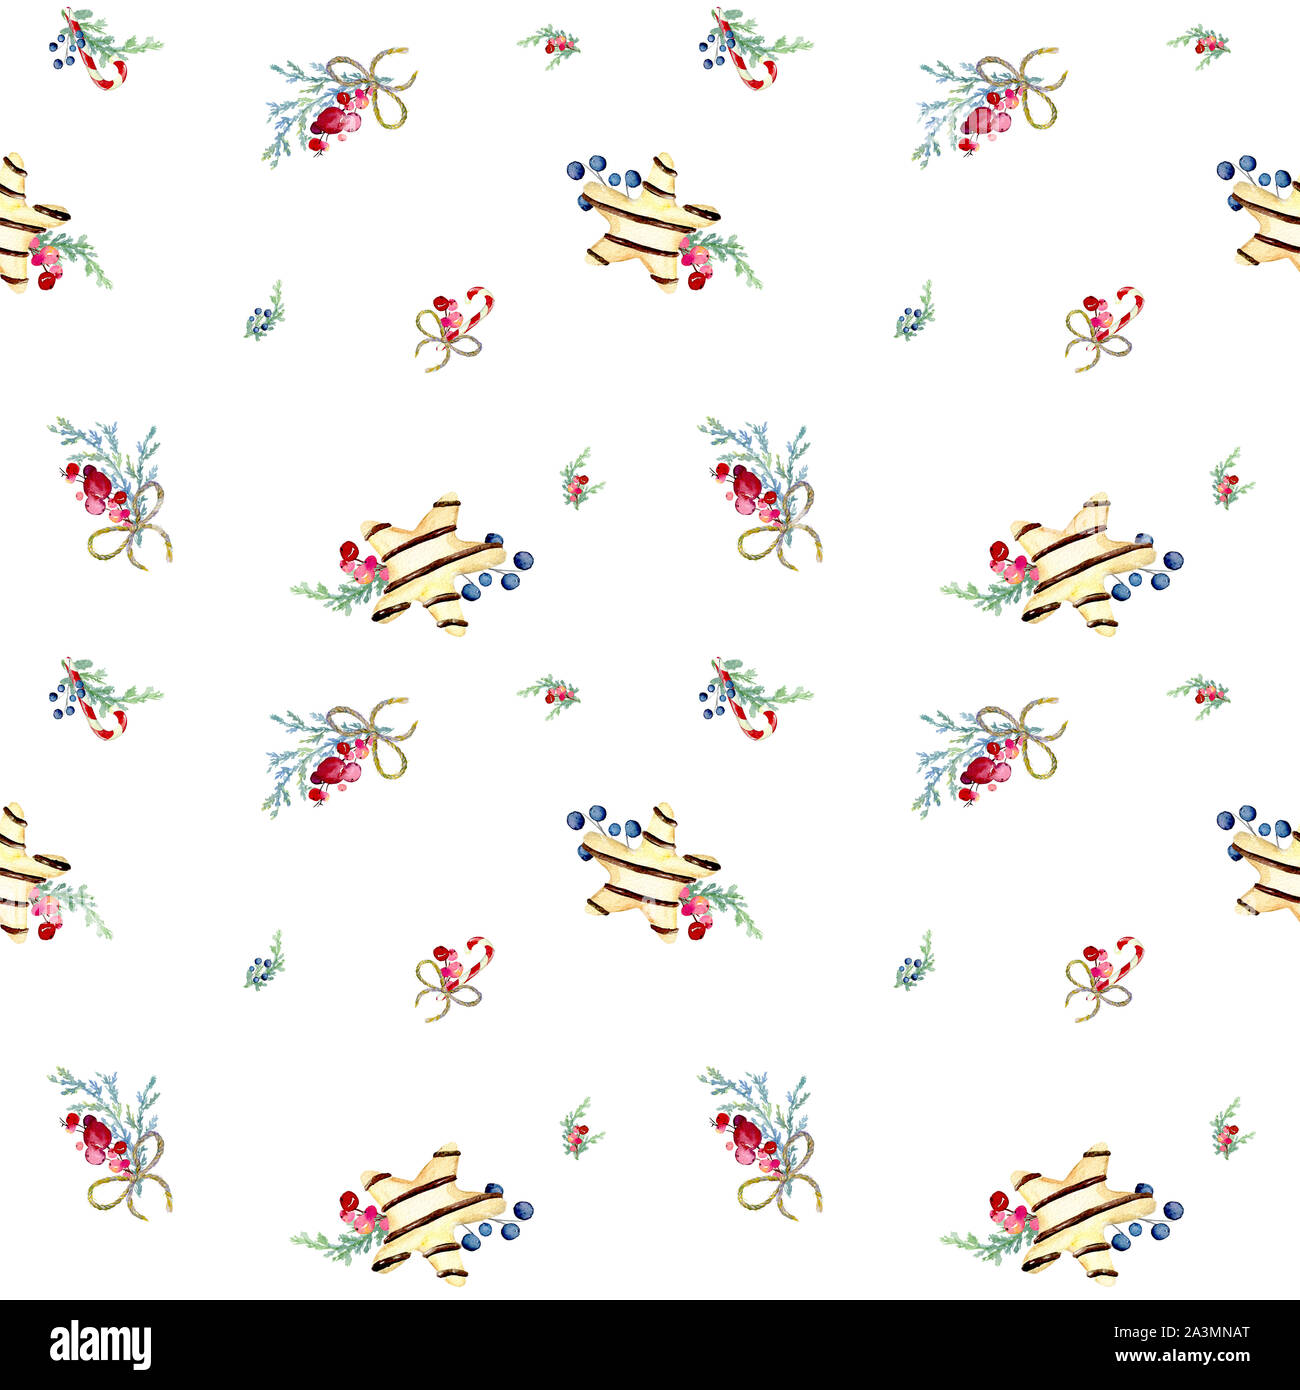 Holiday Background For Invitation Cards Postcards Wrapping